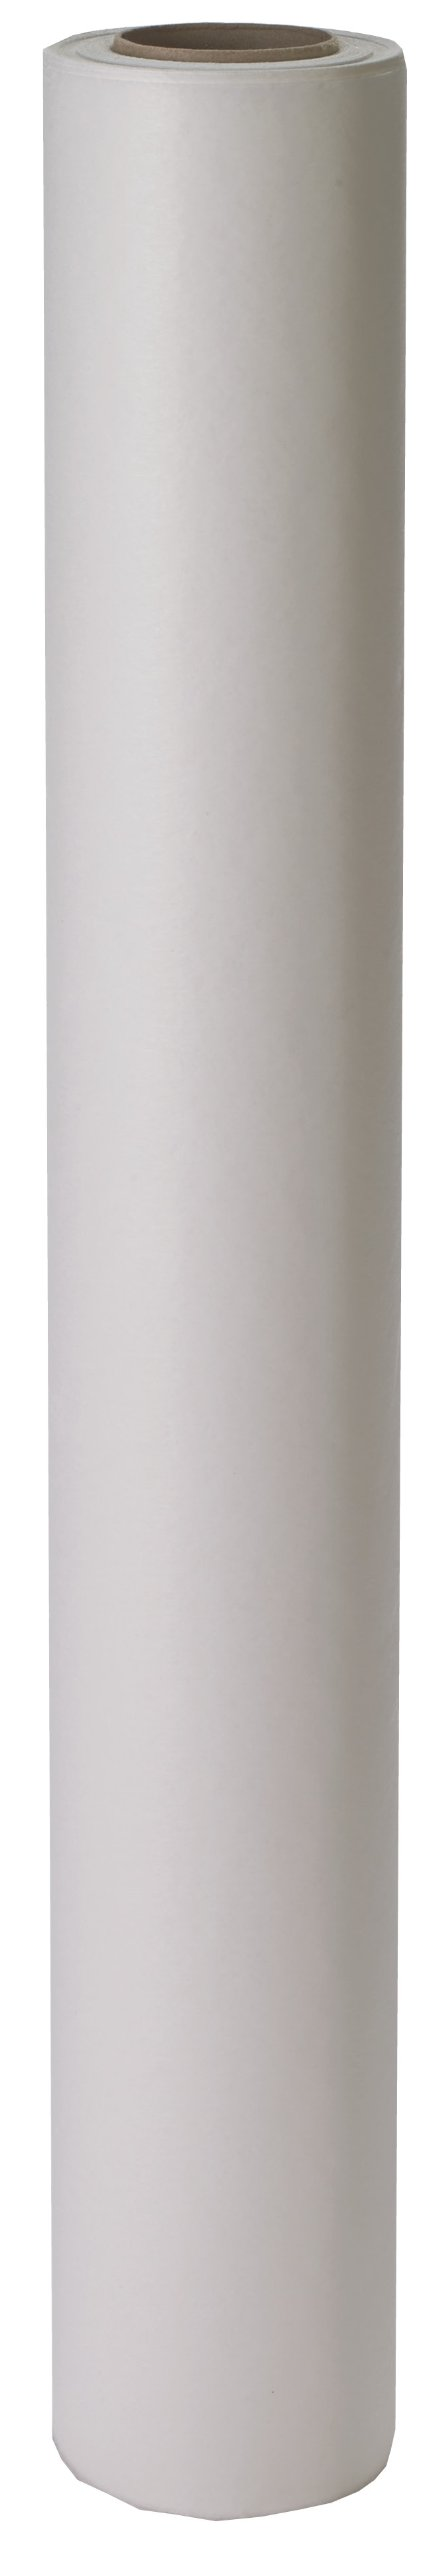 Bilt-Rite Mastex Health Smooth Table Paper, White, 21 Inch, (Pack of 12)